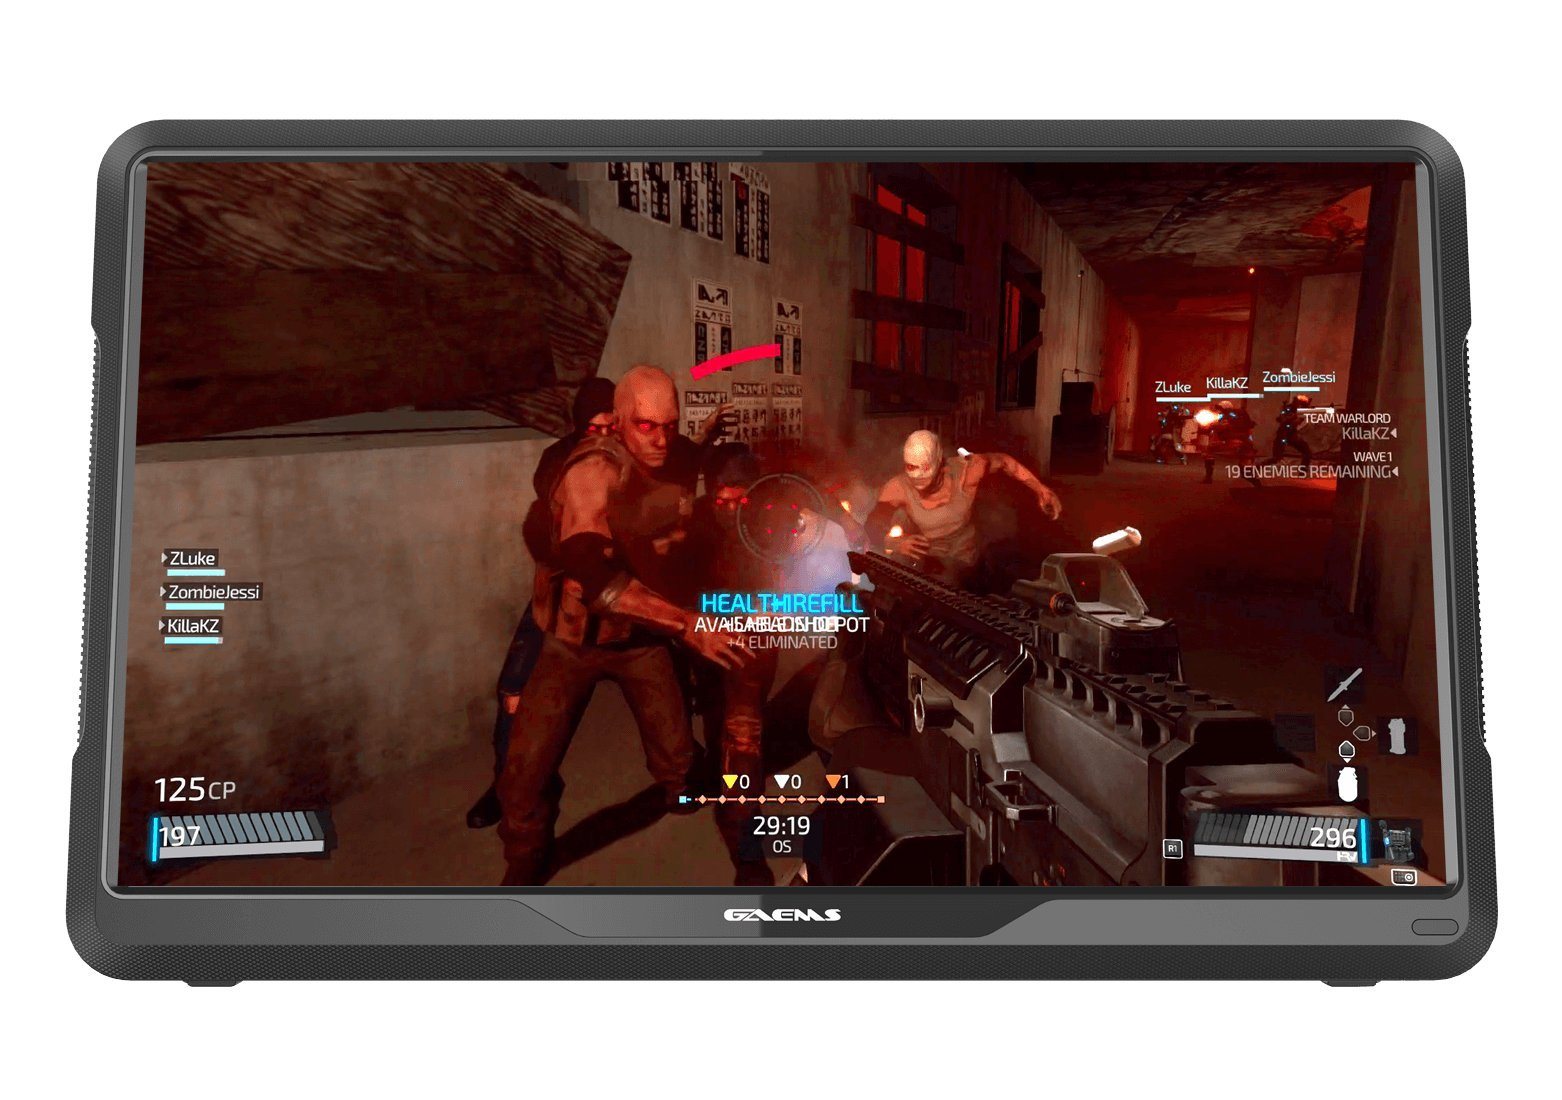 GAEMS M155 15.5'' HD LED Performance Portable Gaming Monitor for PS4, XBOX ONE, and other Consoles (console not included) by GAEMS